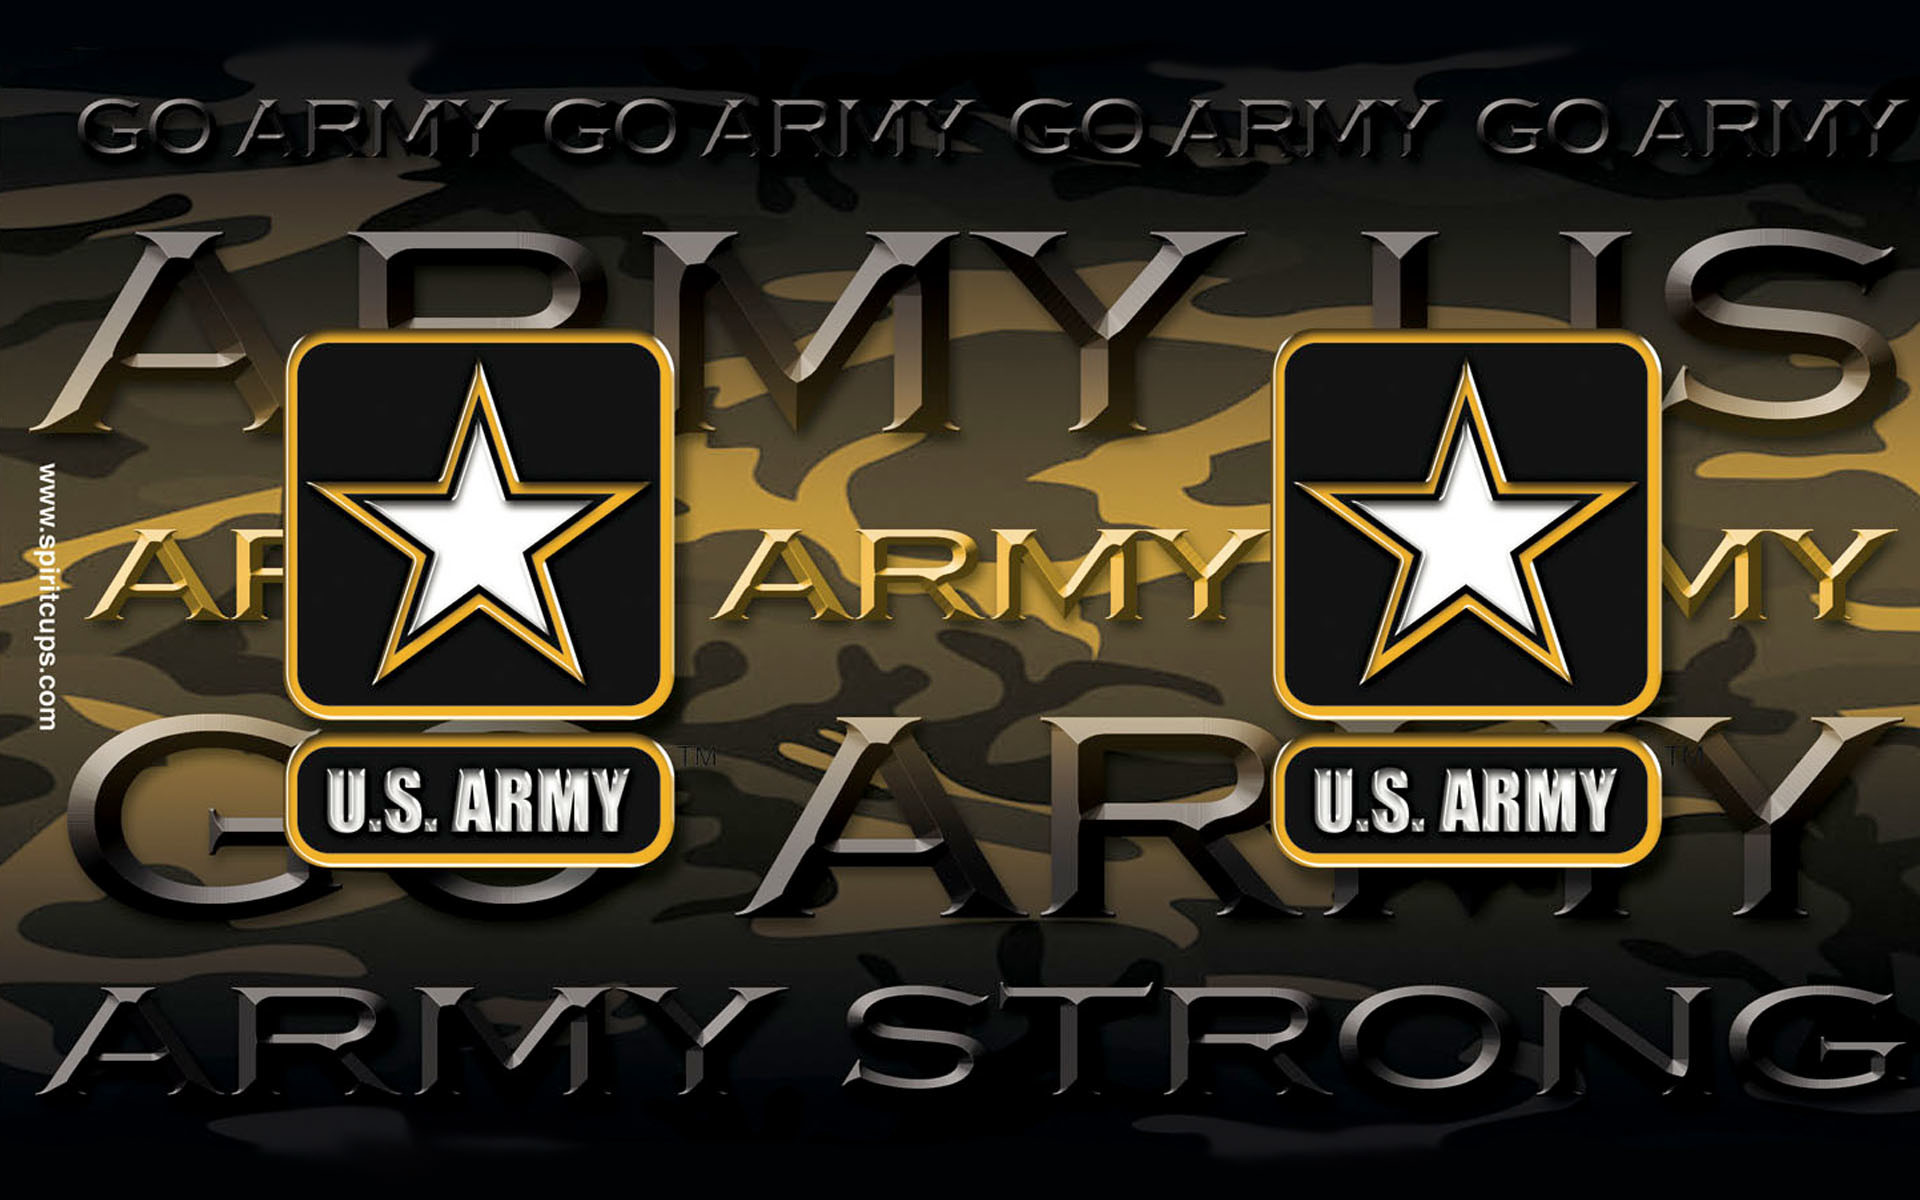 1920x1200 US Army Desktop Backgrounds